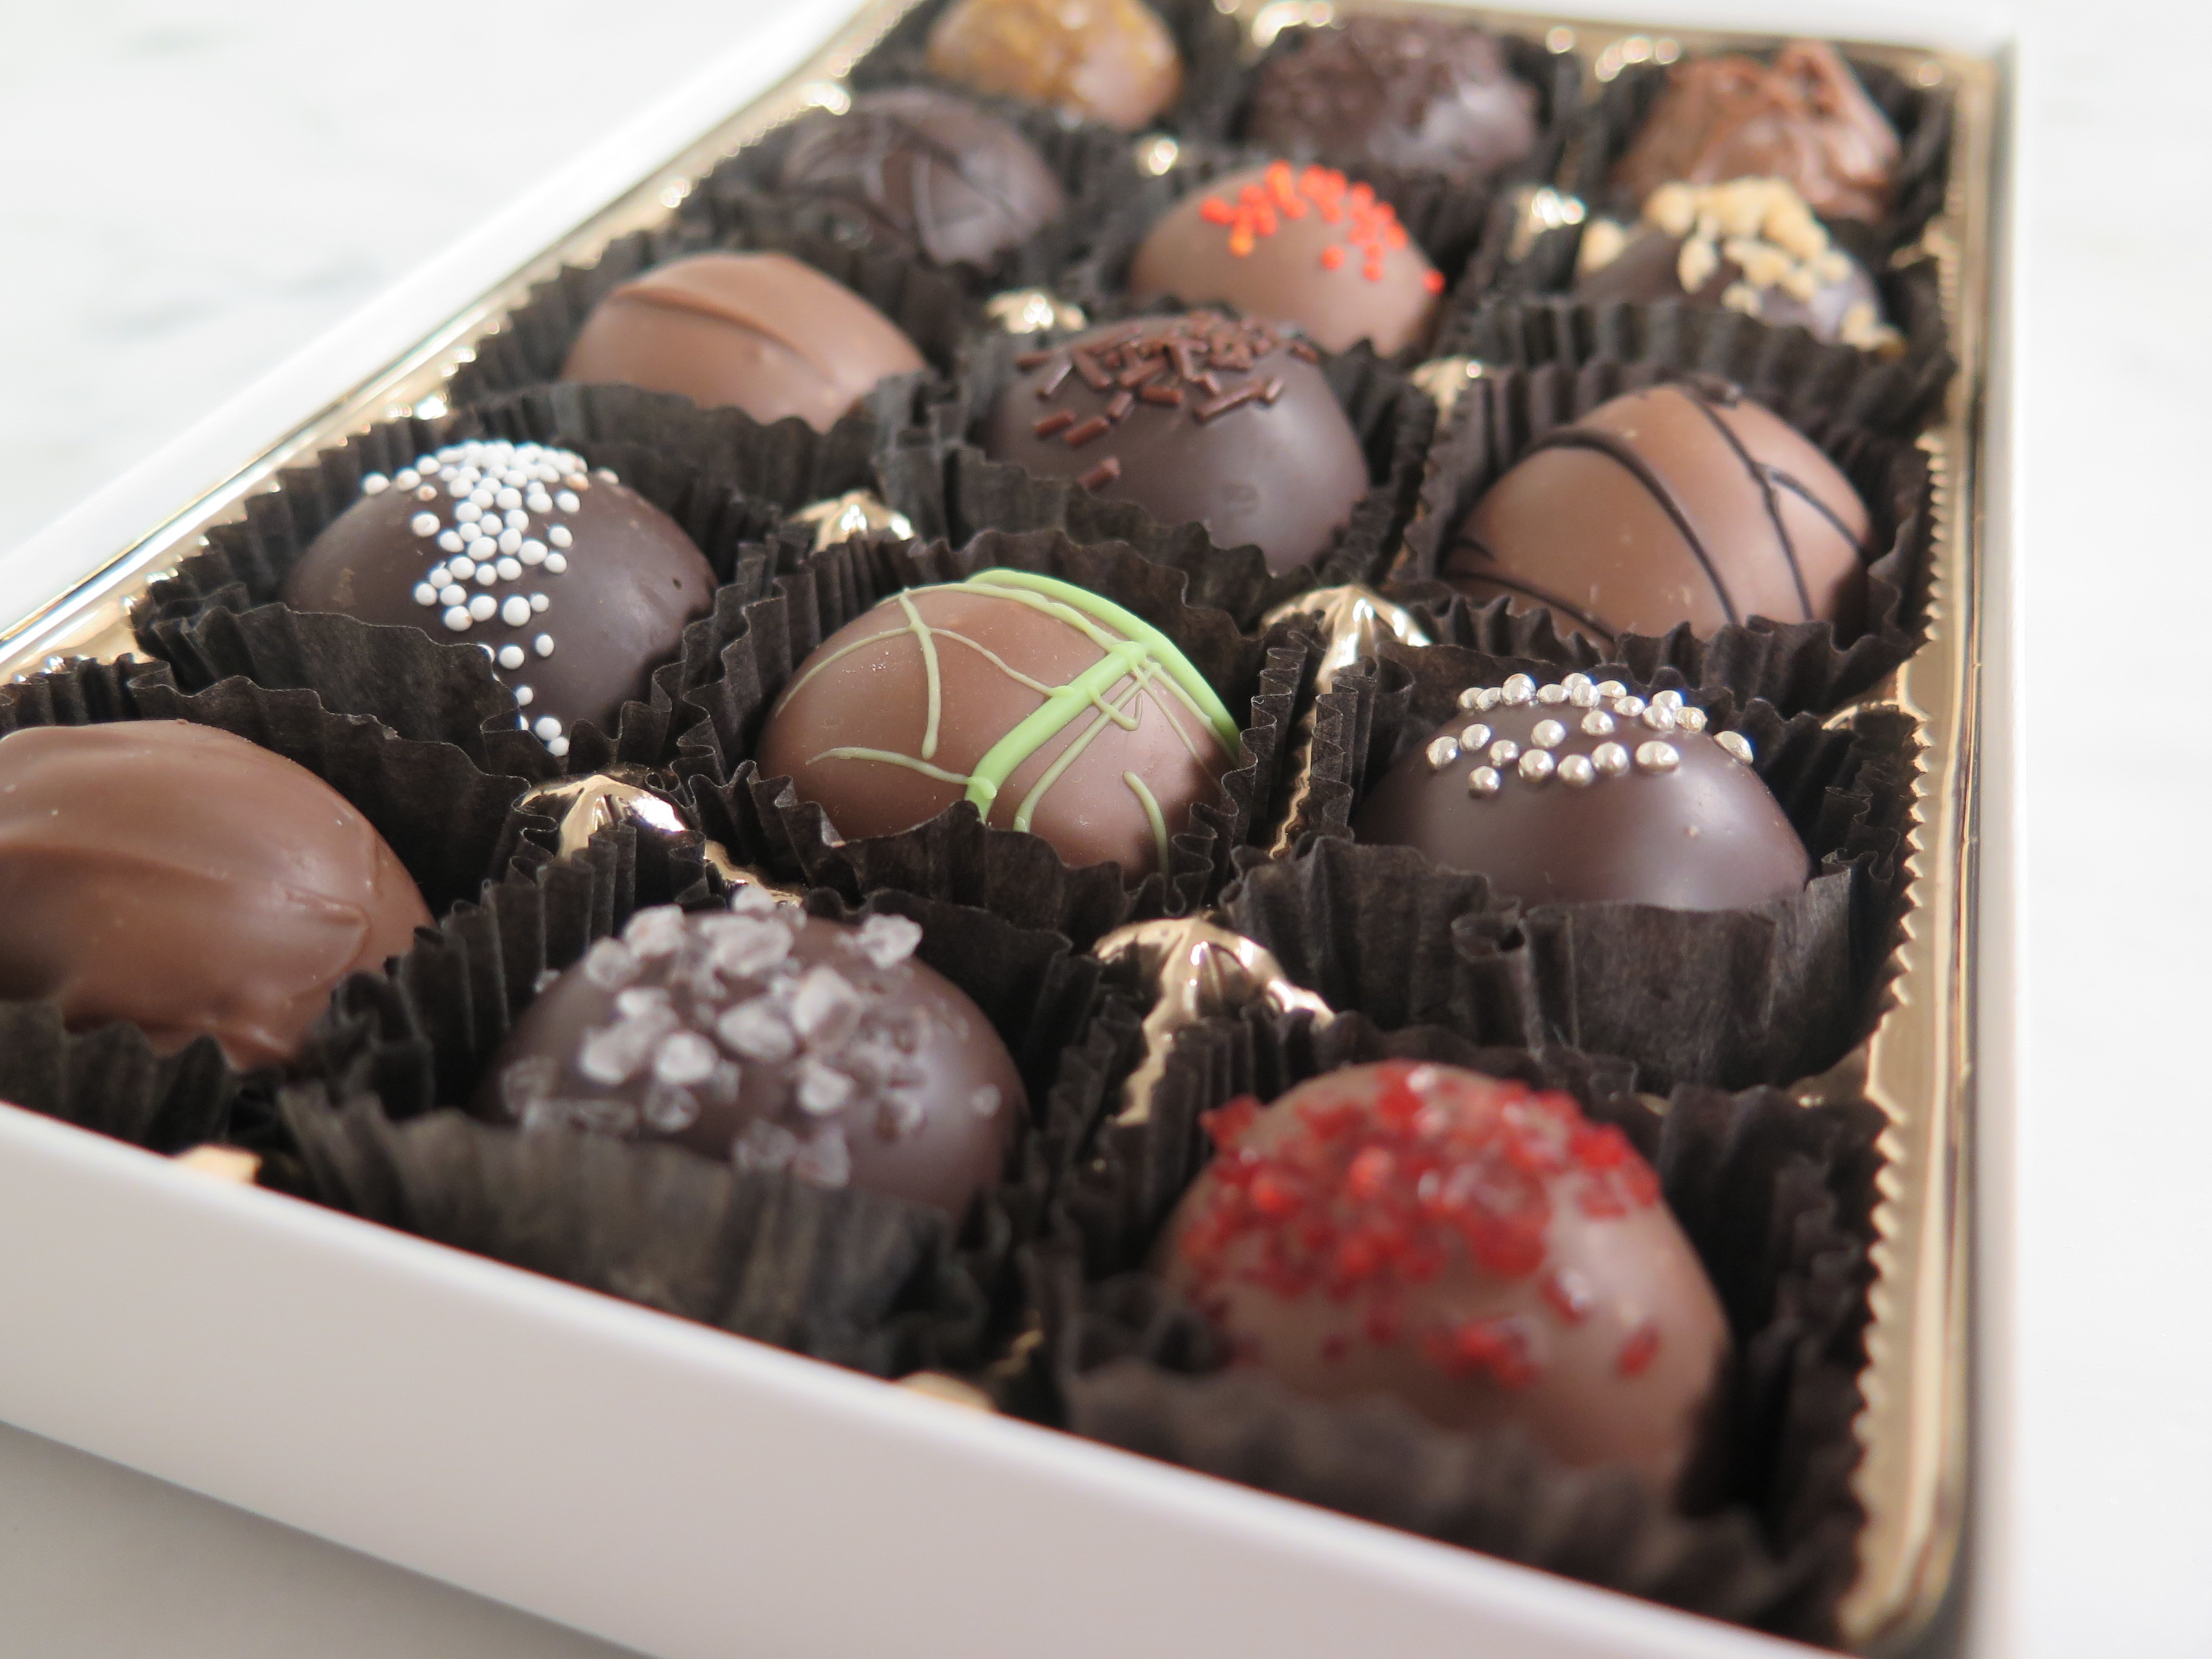 box of gourmet swiss chocolate truffles from Pierres choclates